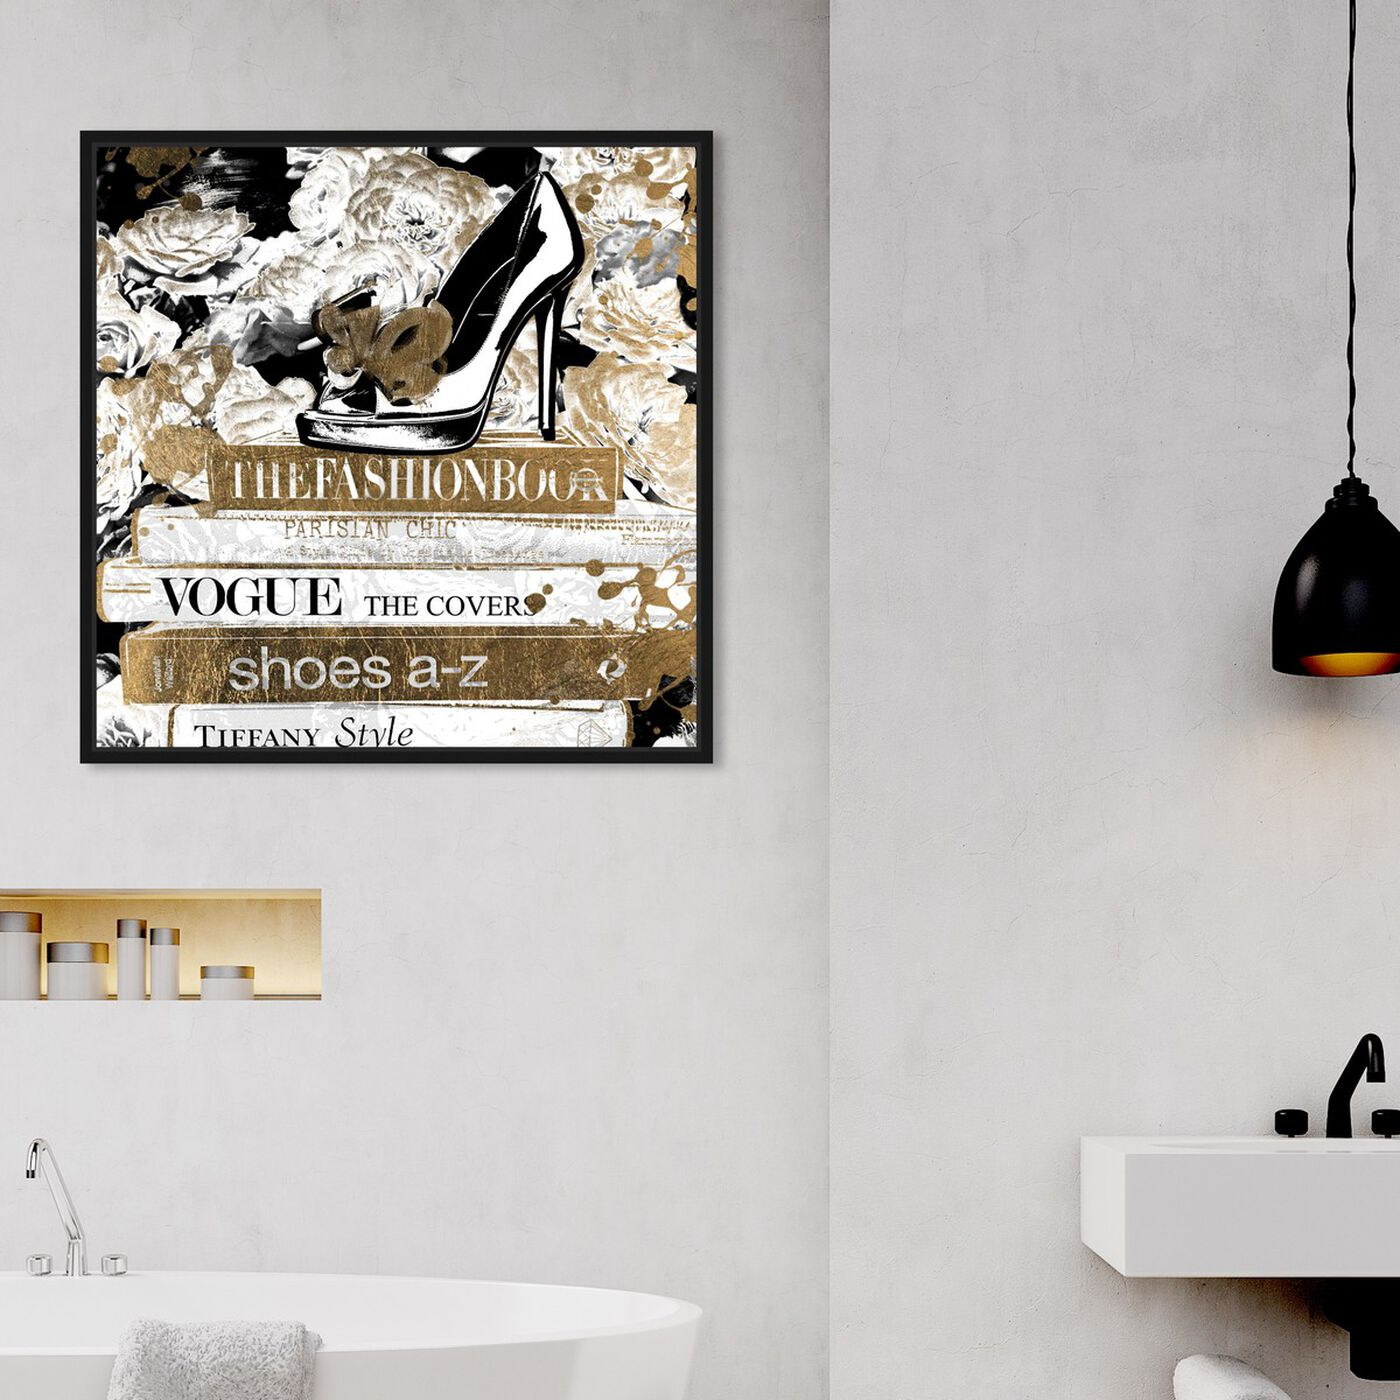 Hanging view of A Chic Library Gold featuring fashion and glam and books art.